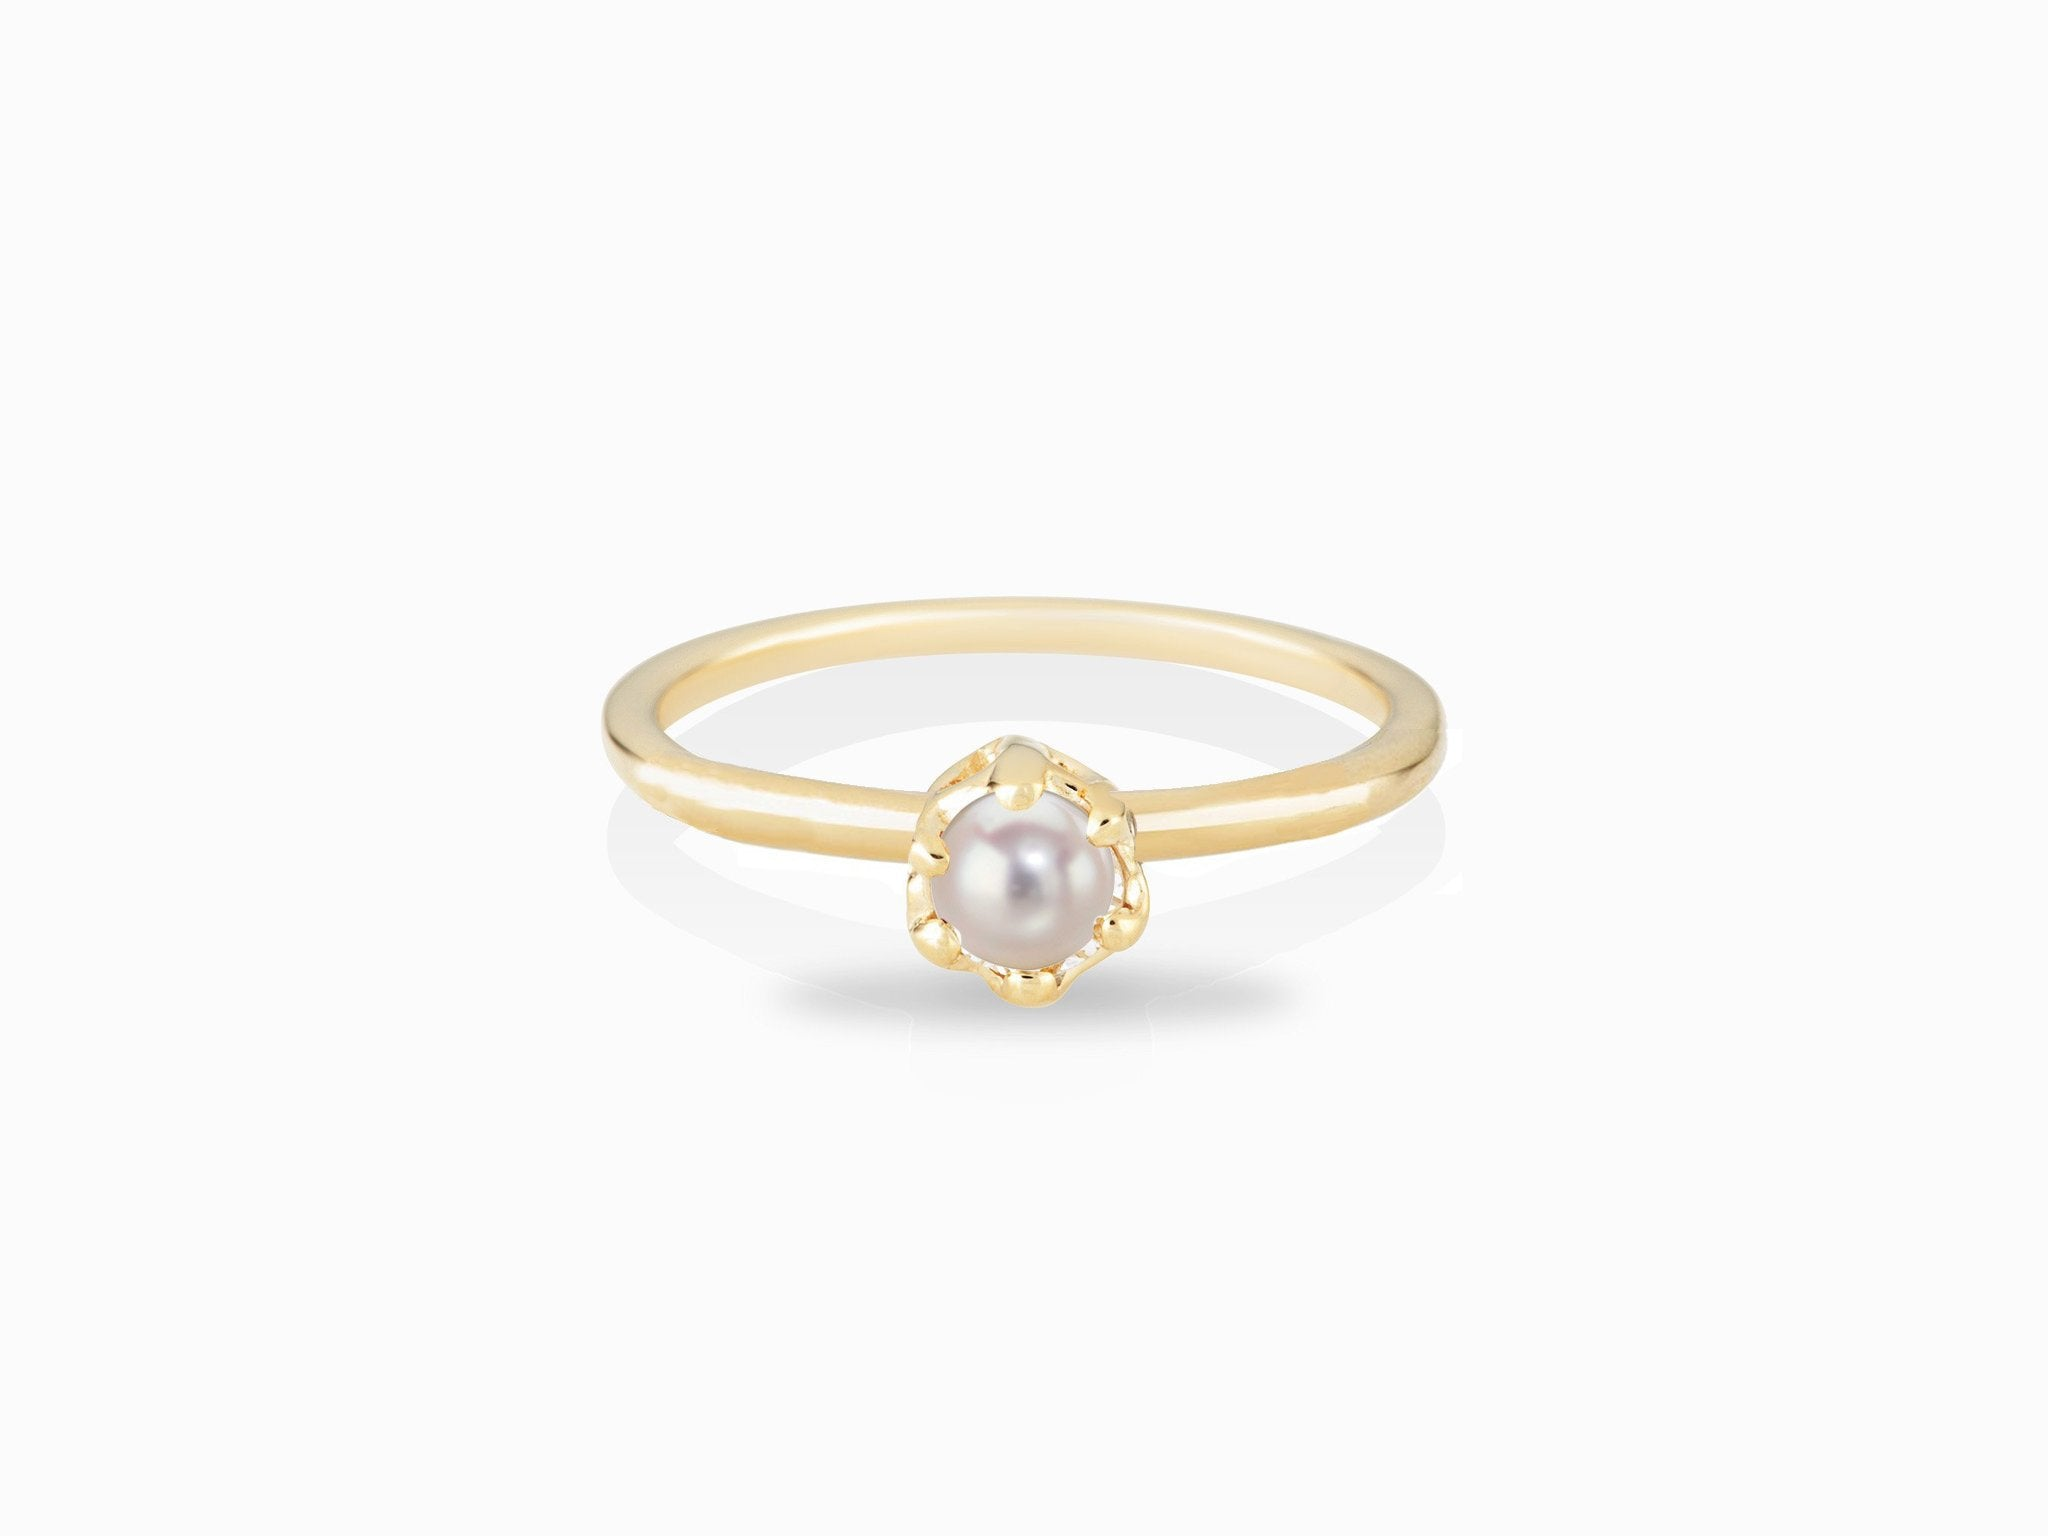 Entity Solitaire Ring 'Limited Release' - In Stock Now